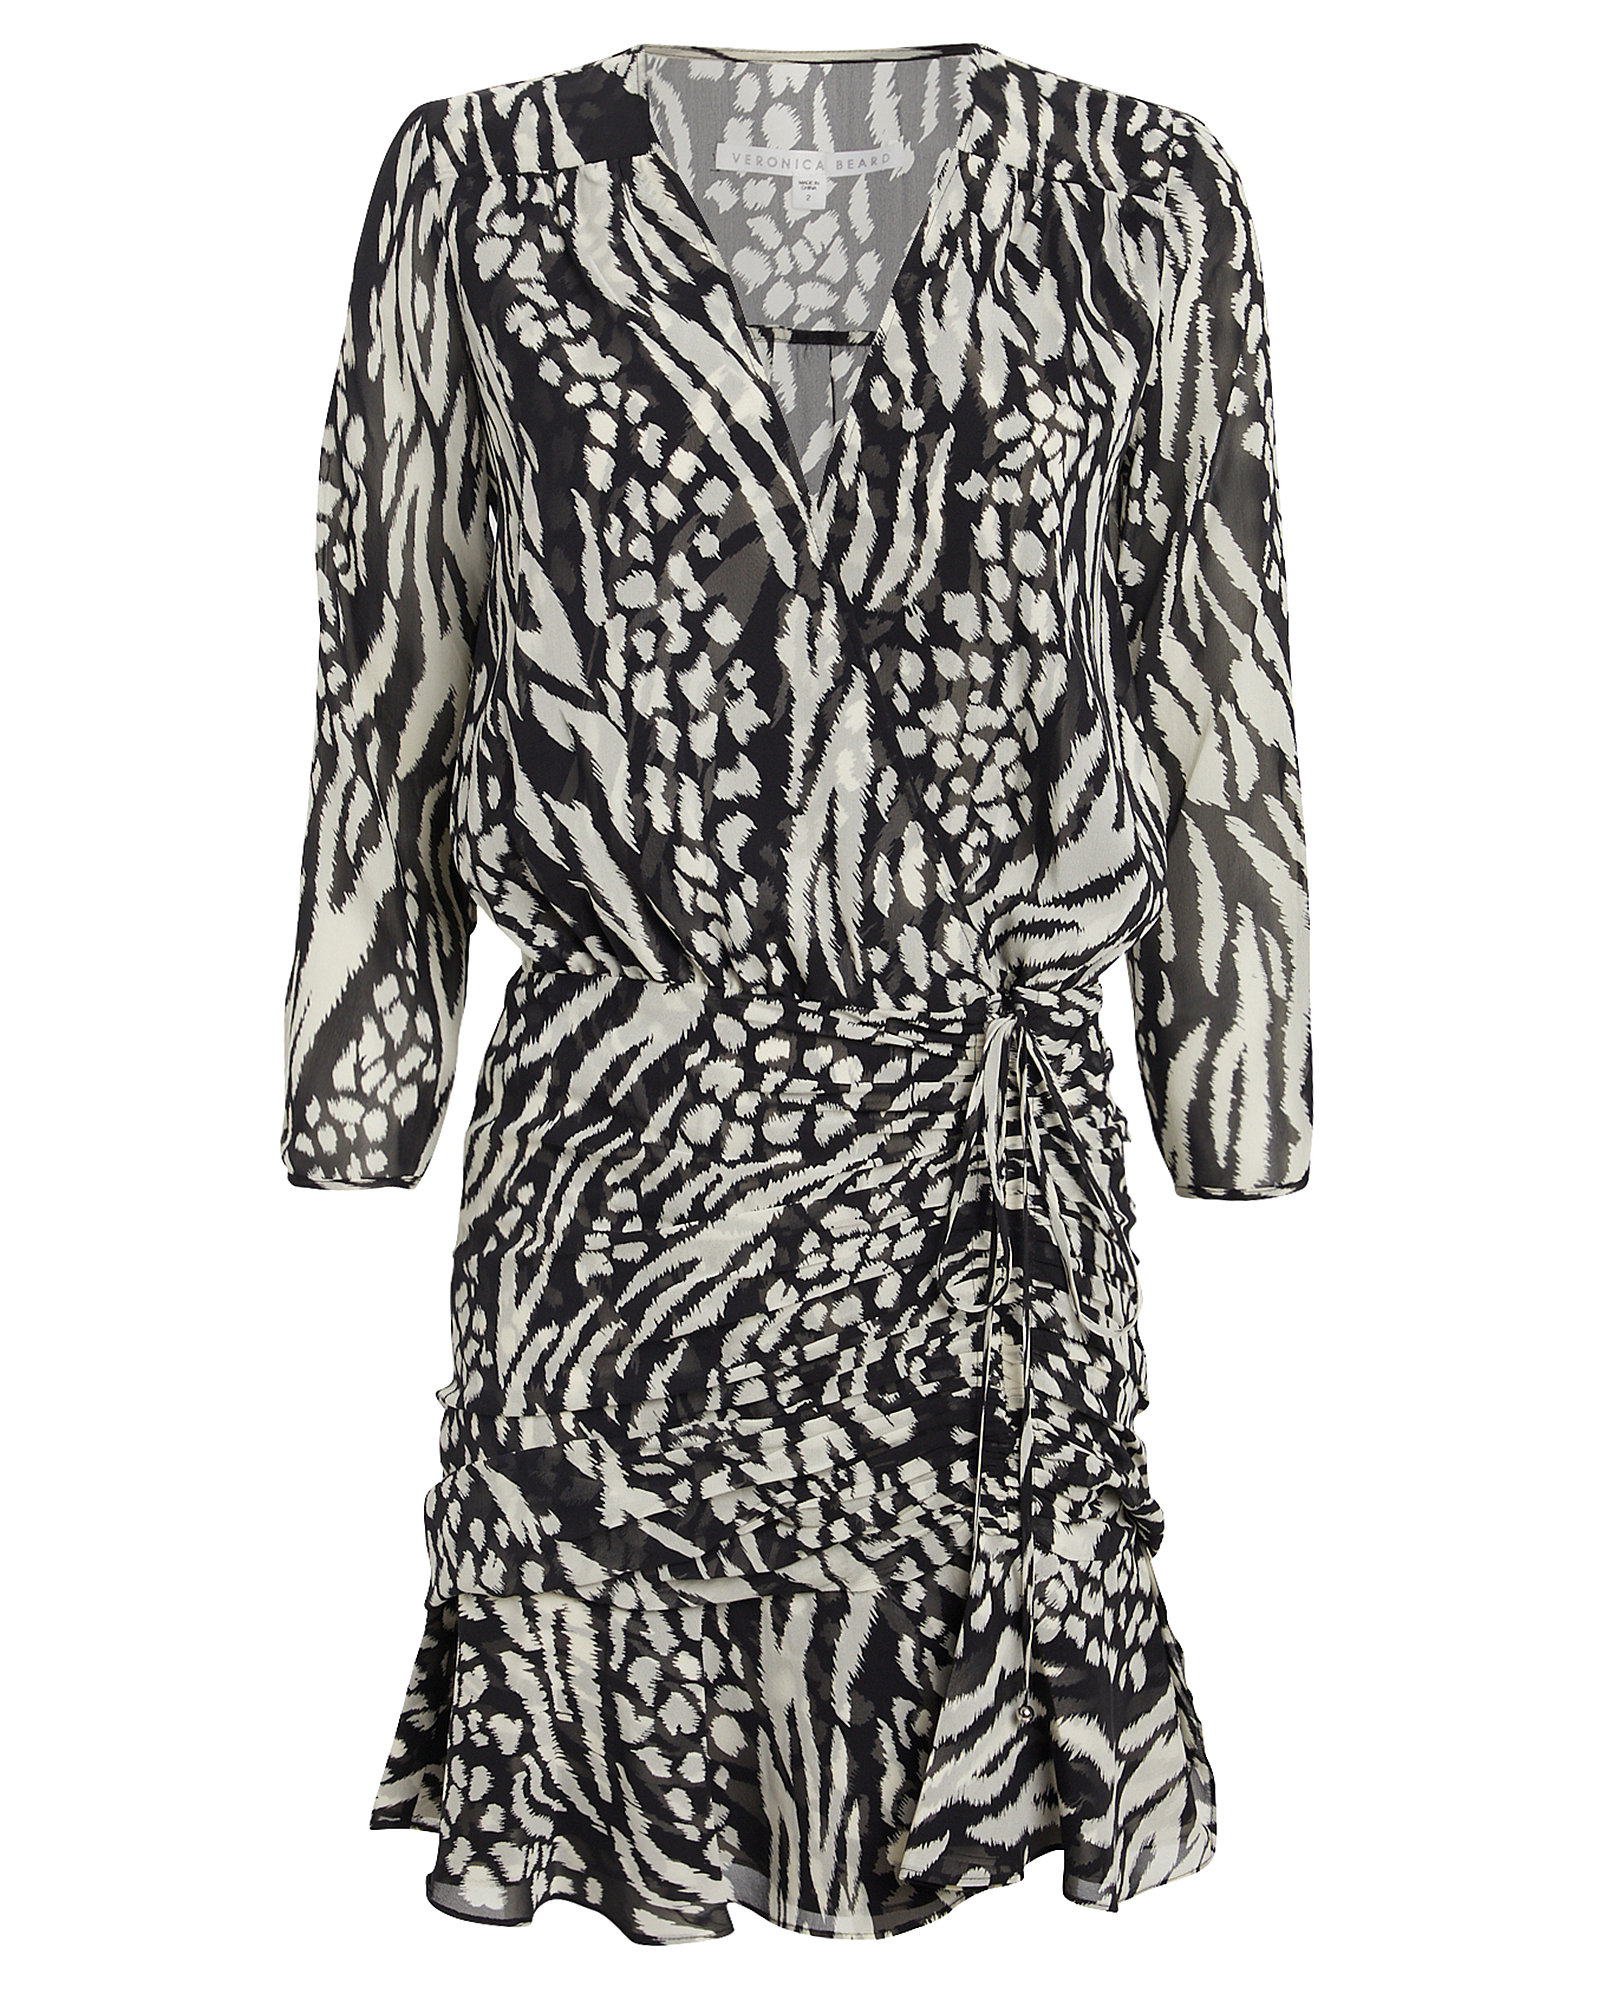 Veronica Beard Dresses VERONICA BEARD KIRAN SILK ANIMAL PRINT MINI DRESS